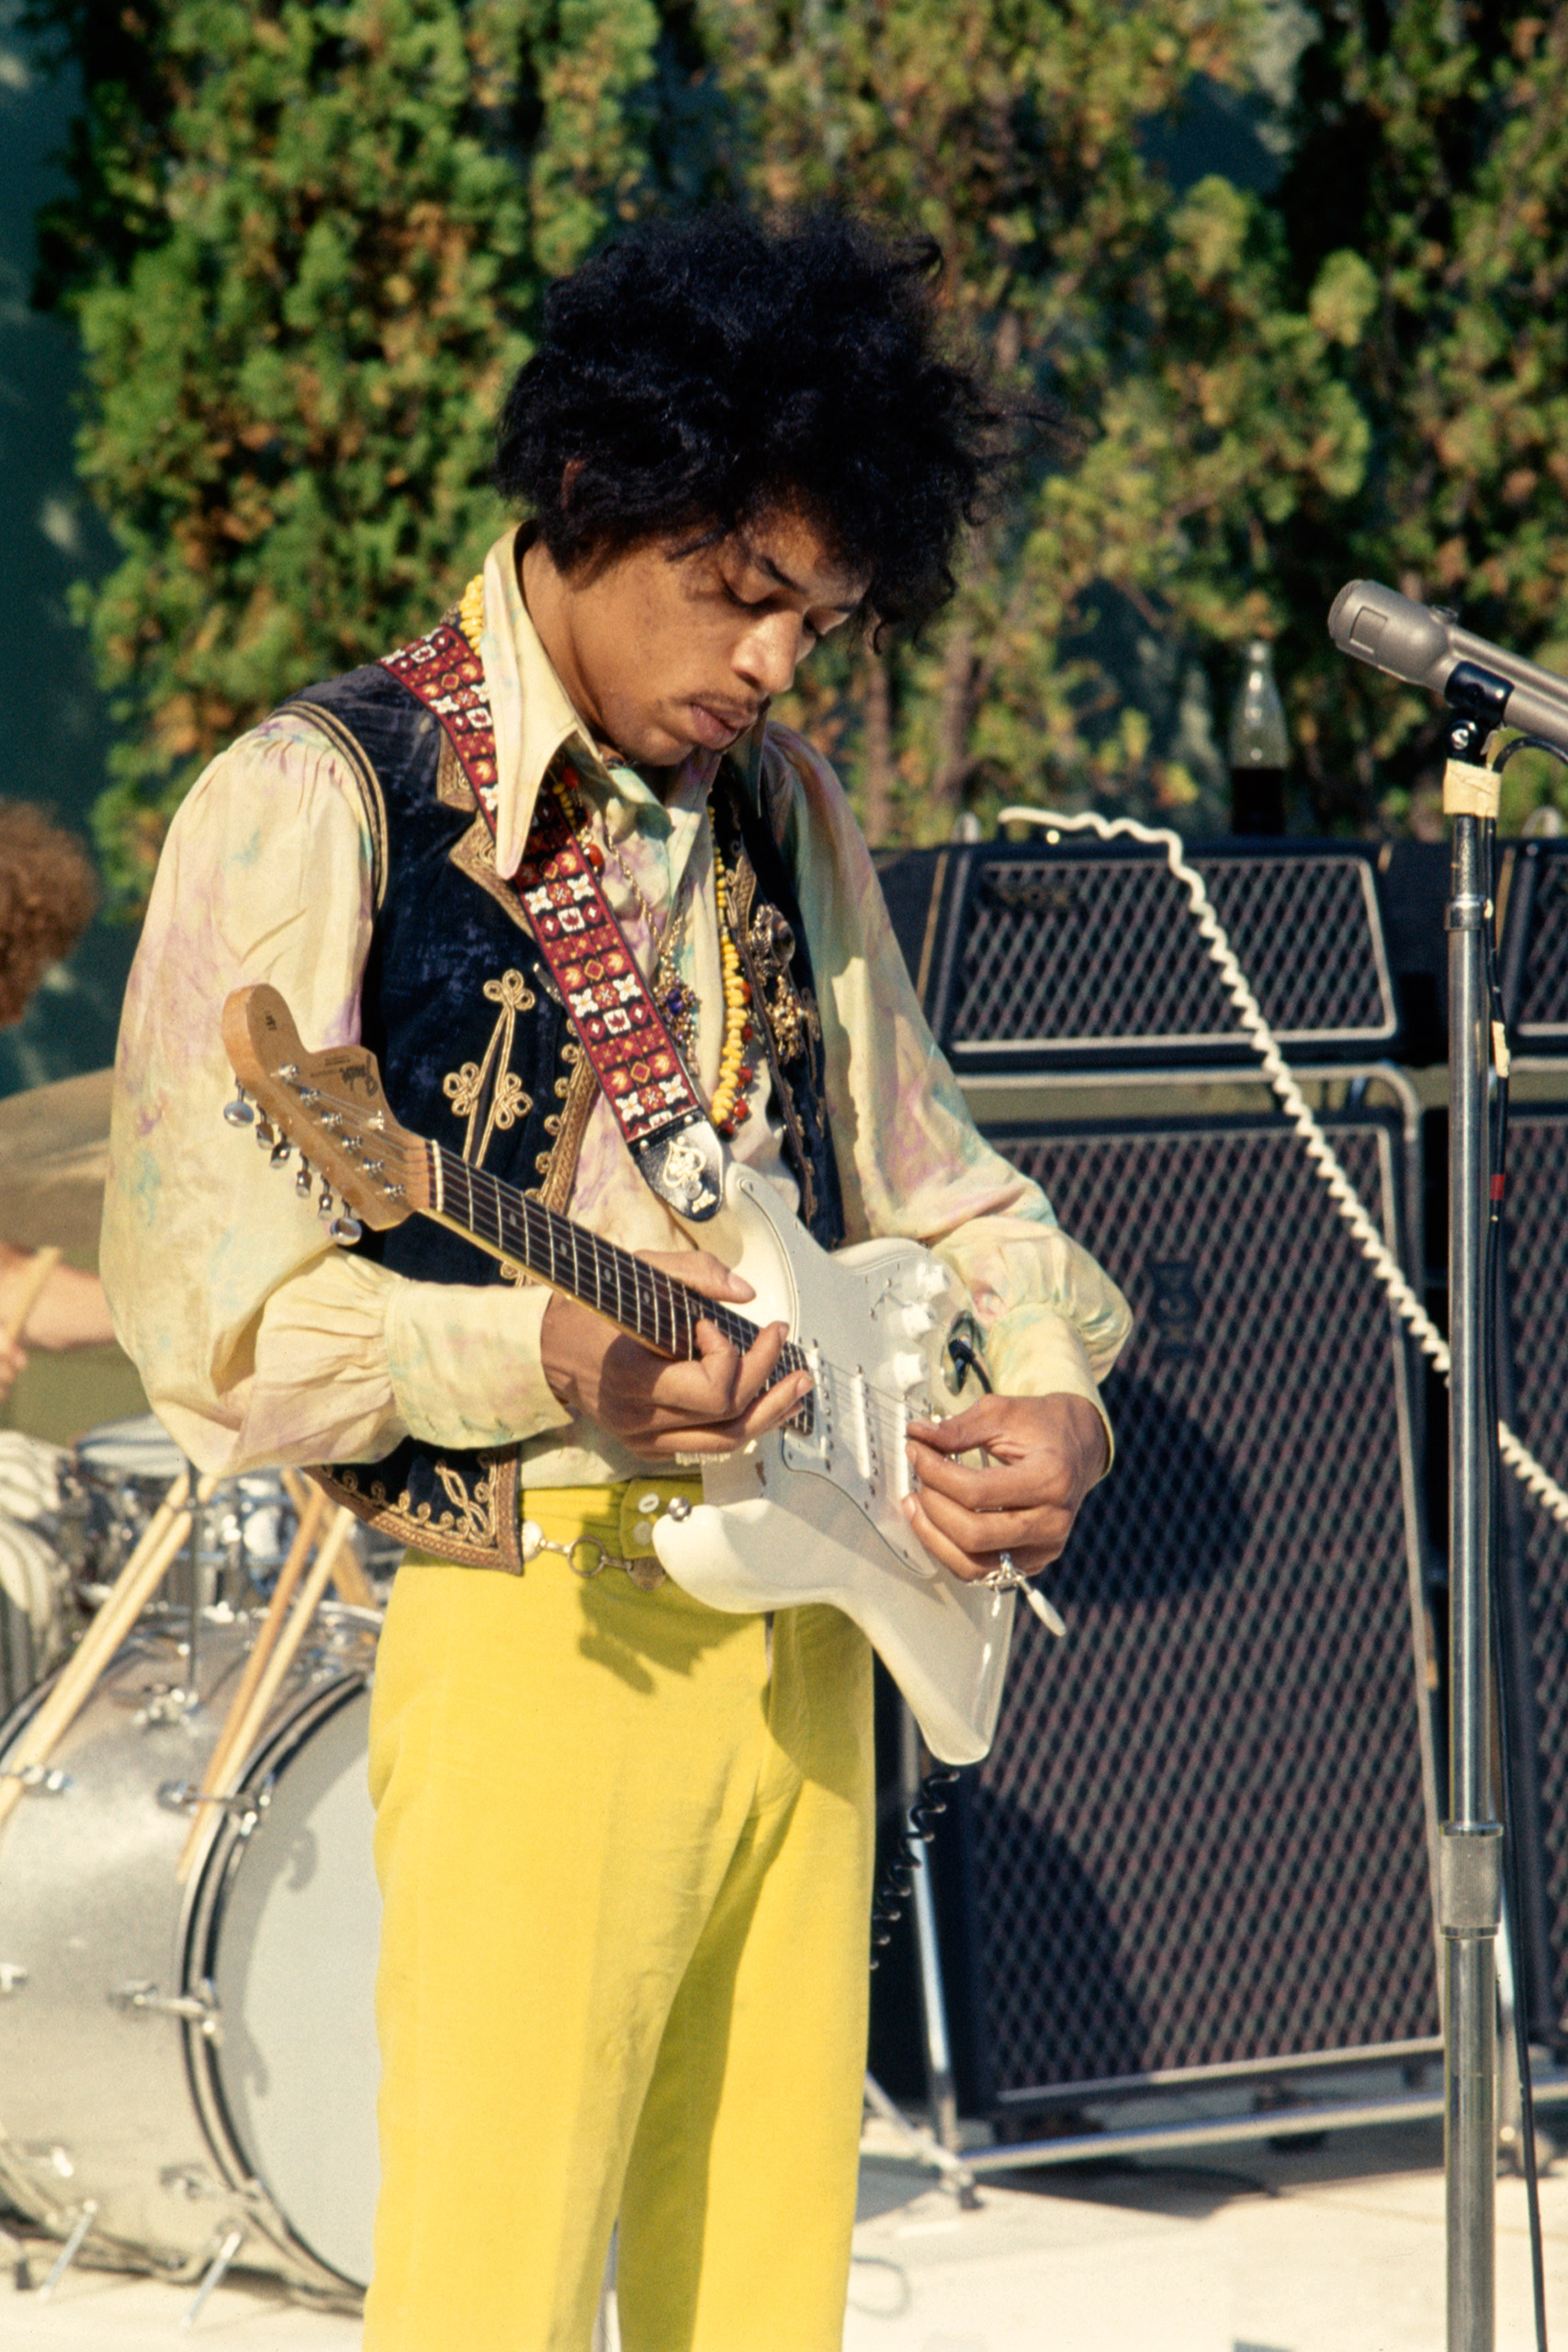 Jimi Hendrix on stage during a rehearsal ahead of the performance by The Jimi Hendrix Experience at the Hollywood Bowl on Aug. 18, 1967.